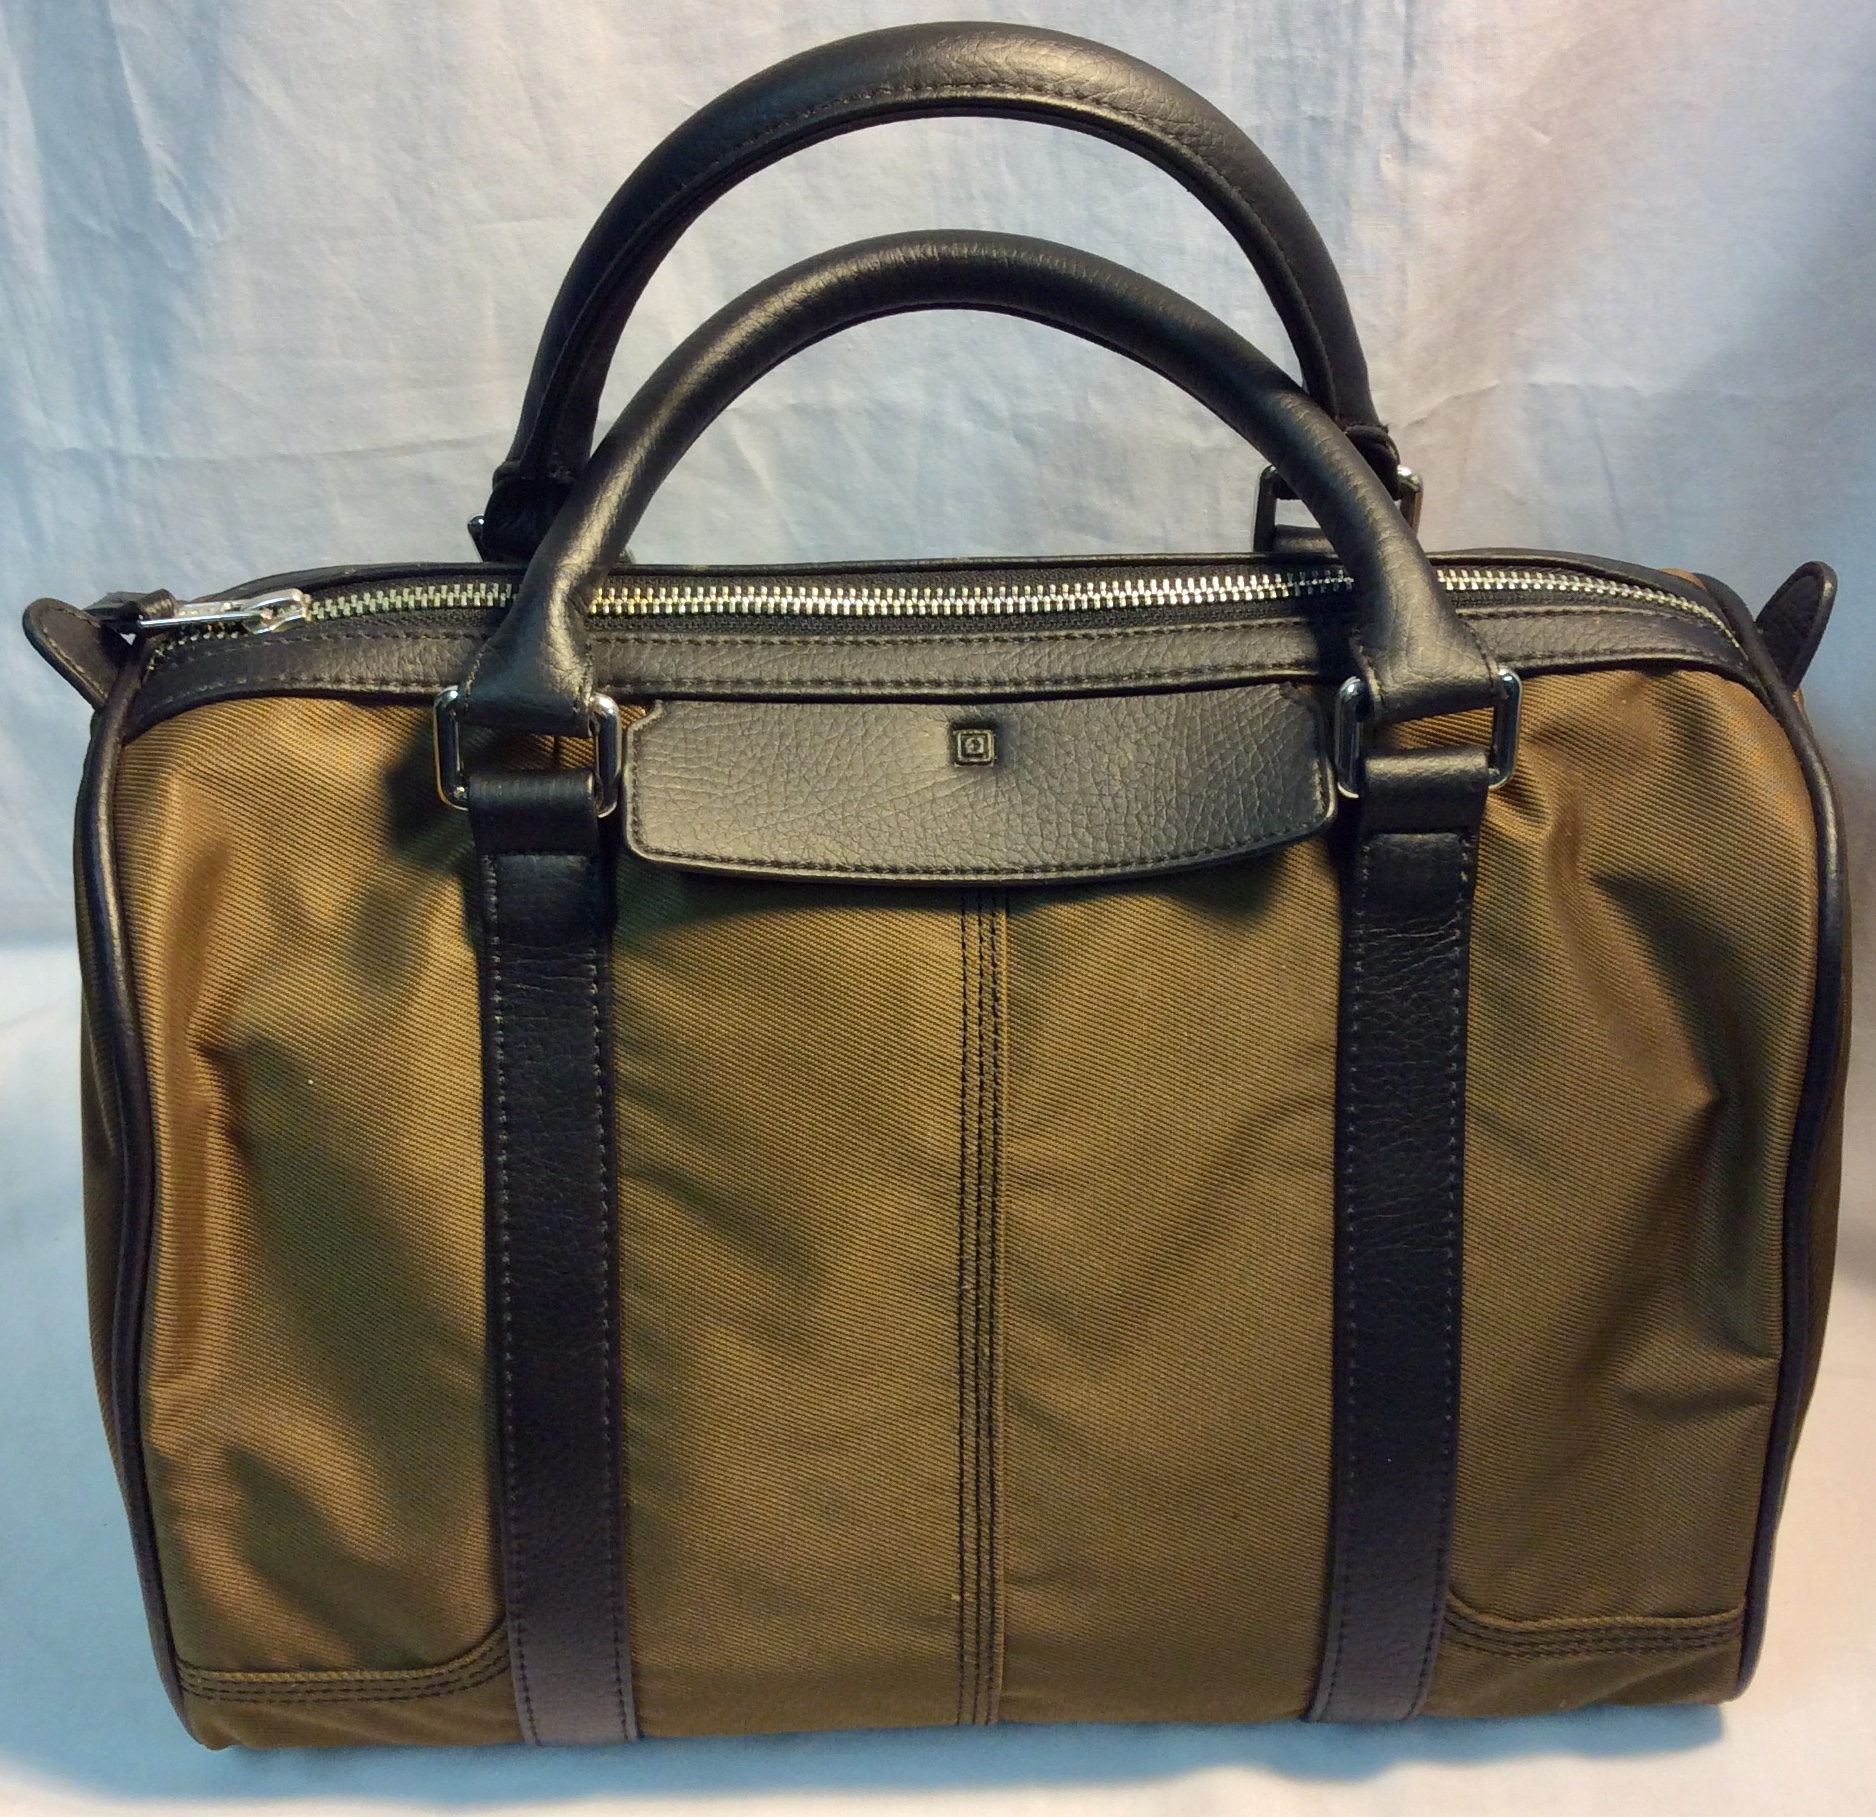 5.11 Brown nylon with black leather